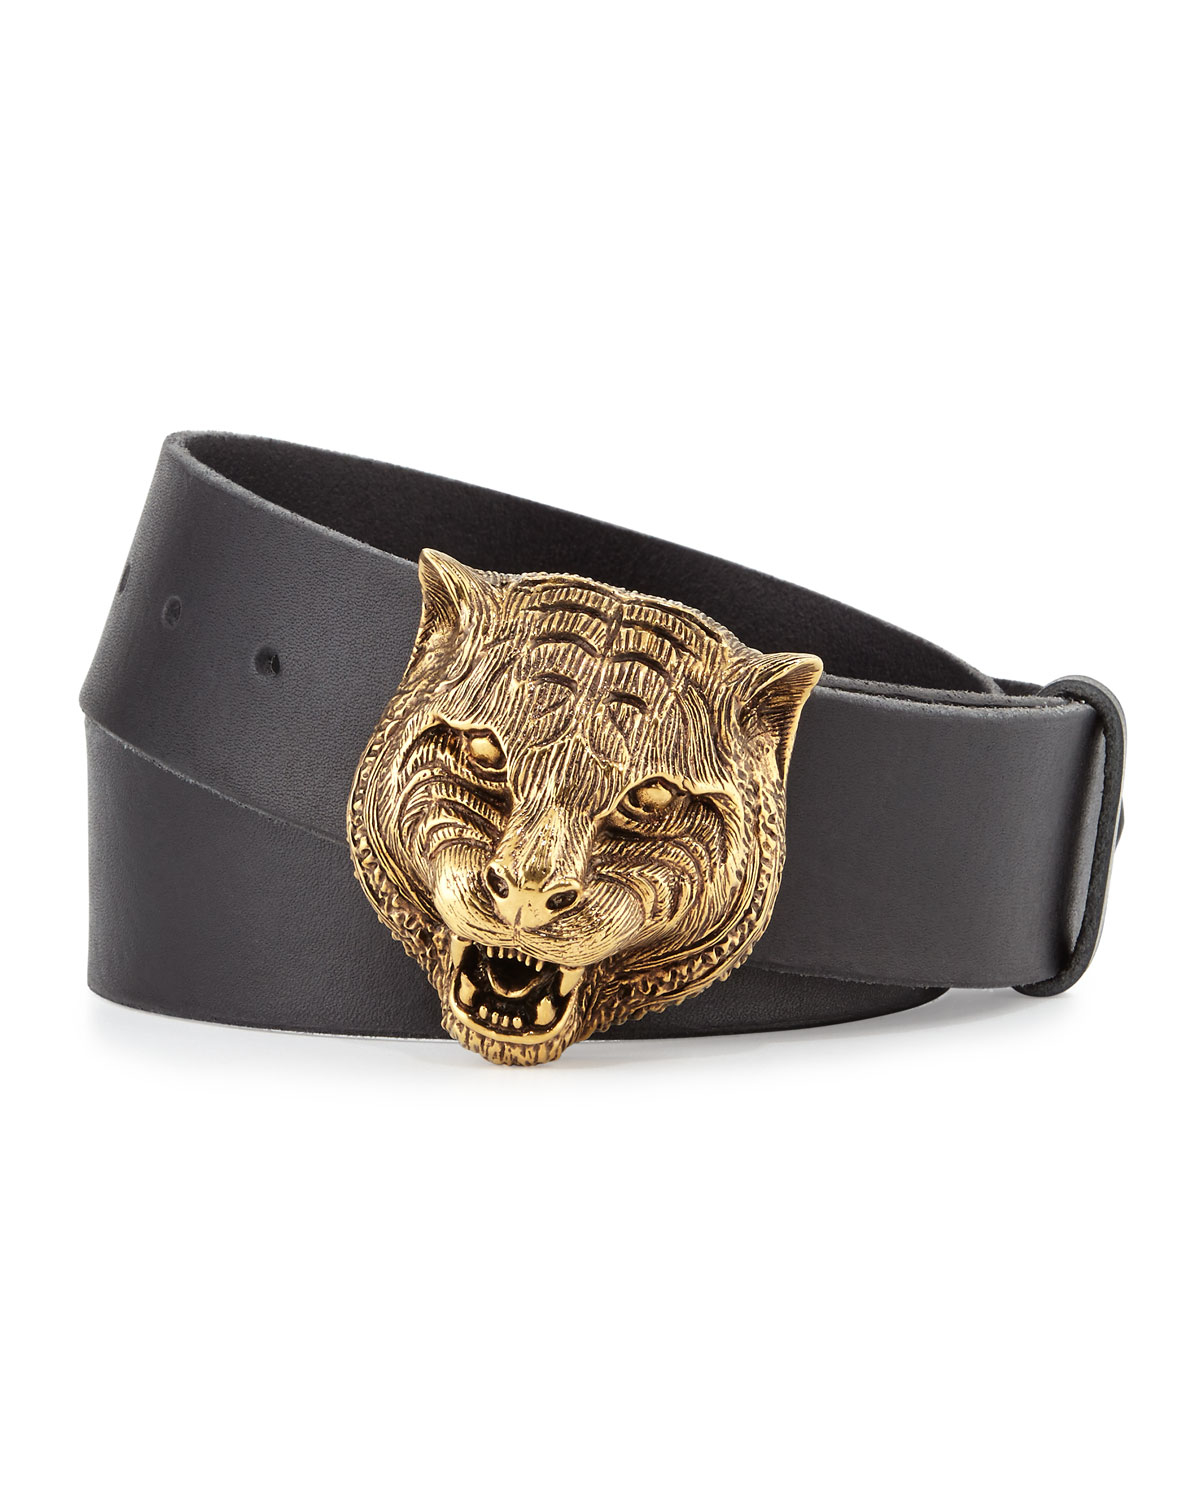 7cb2e3ea880 Lyst - Gucci Men s Leather Belt With Tiger Buckle in Black for Men